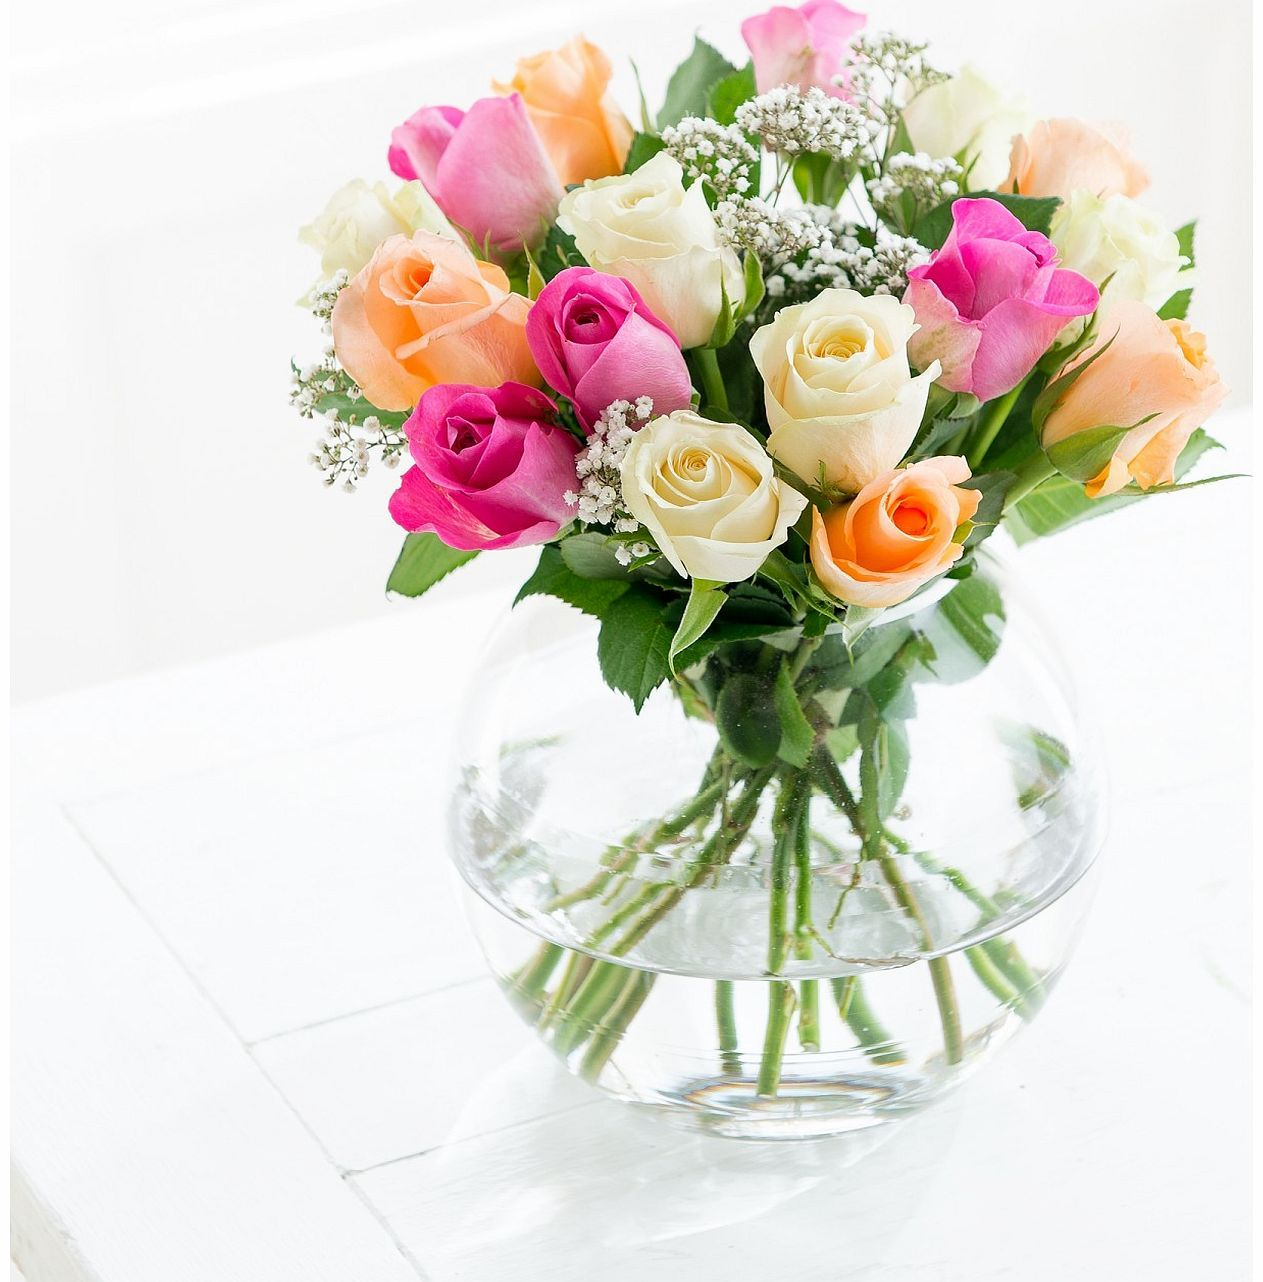 Flying flowers 15 mixed roses 5 white roses 5 peach roses 5 pink flying flowers 15 mixed roses 5 white roses 5 peach roses 5 pink roses izmirmasajfo Image collections